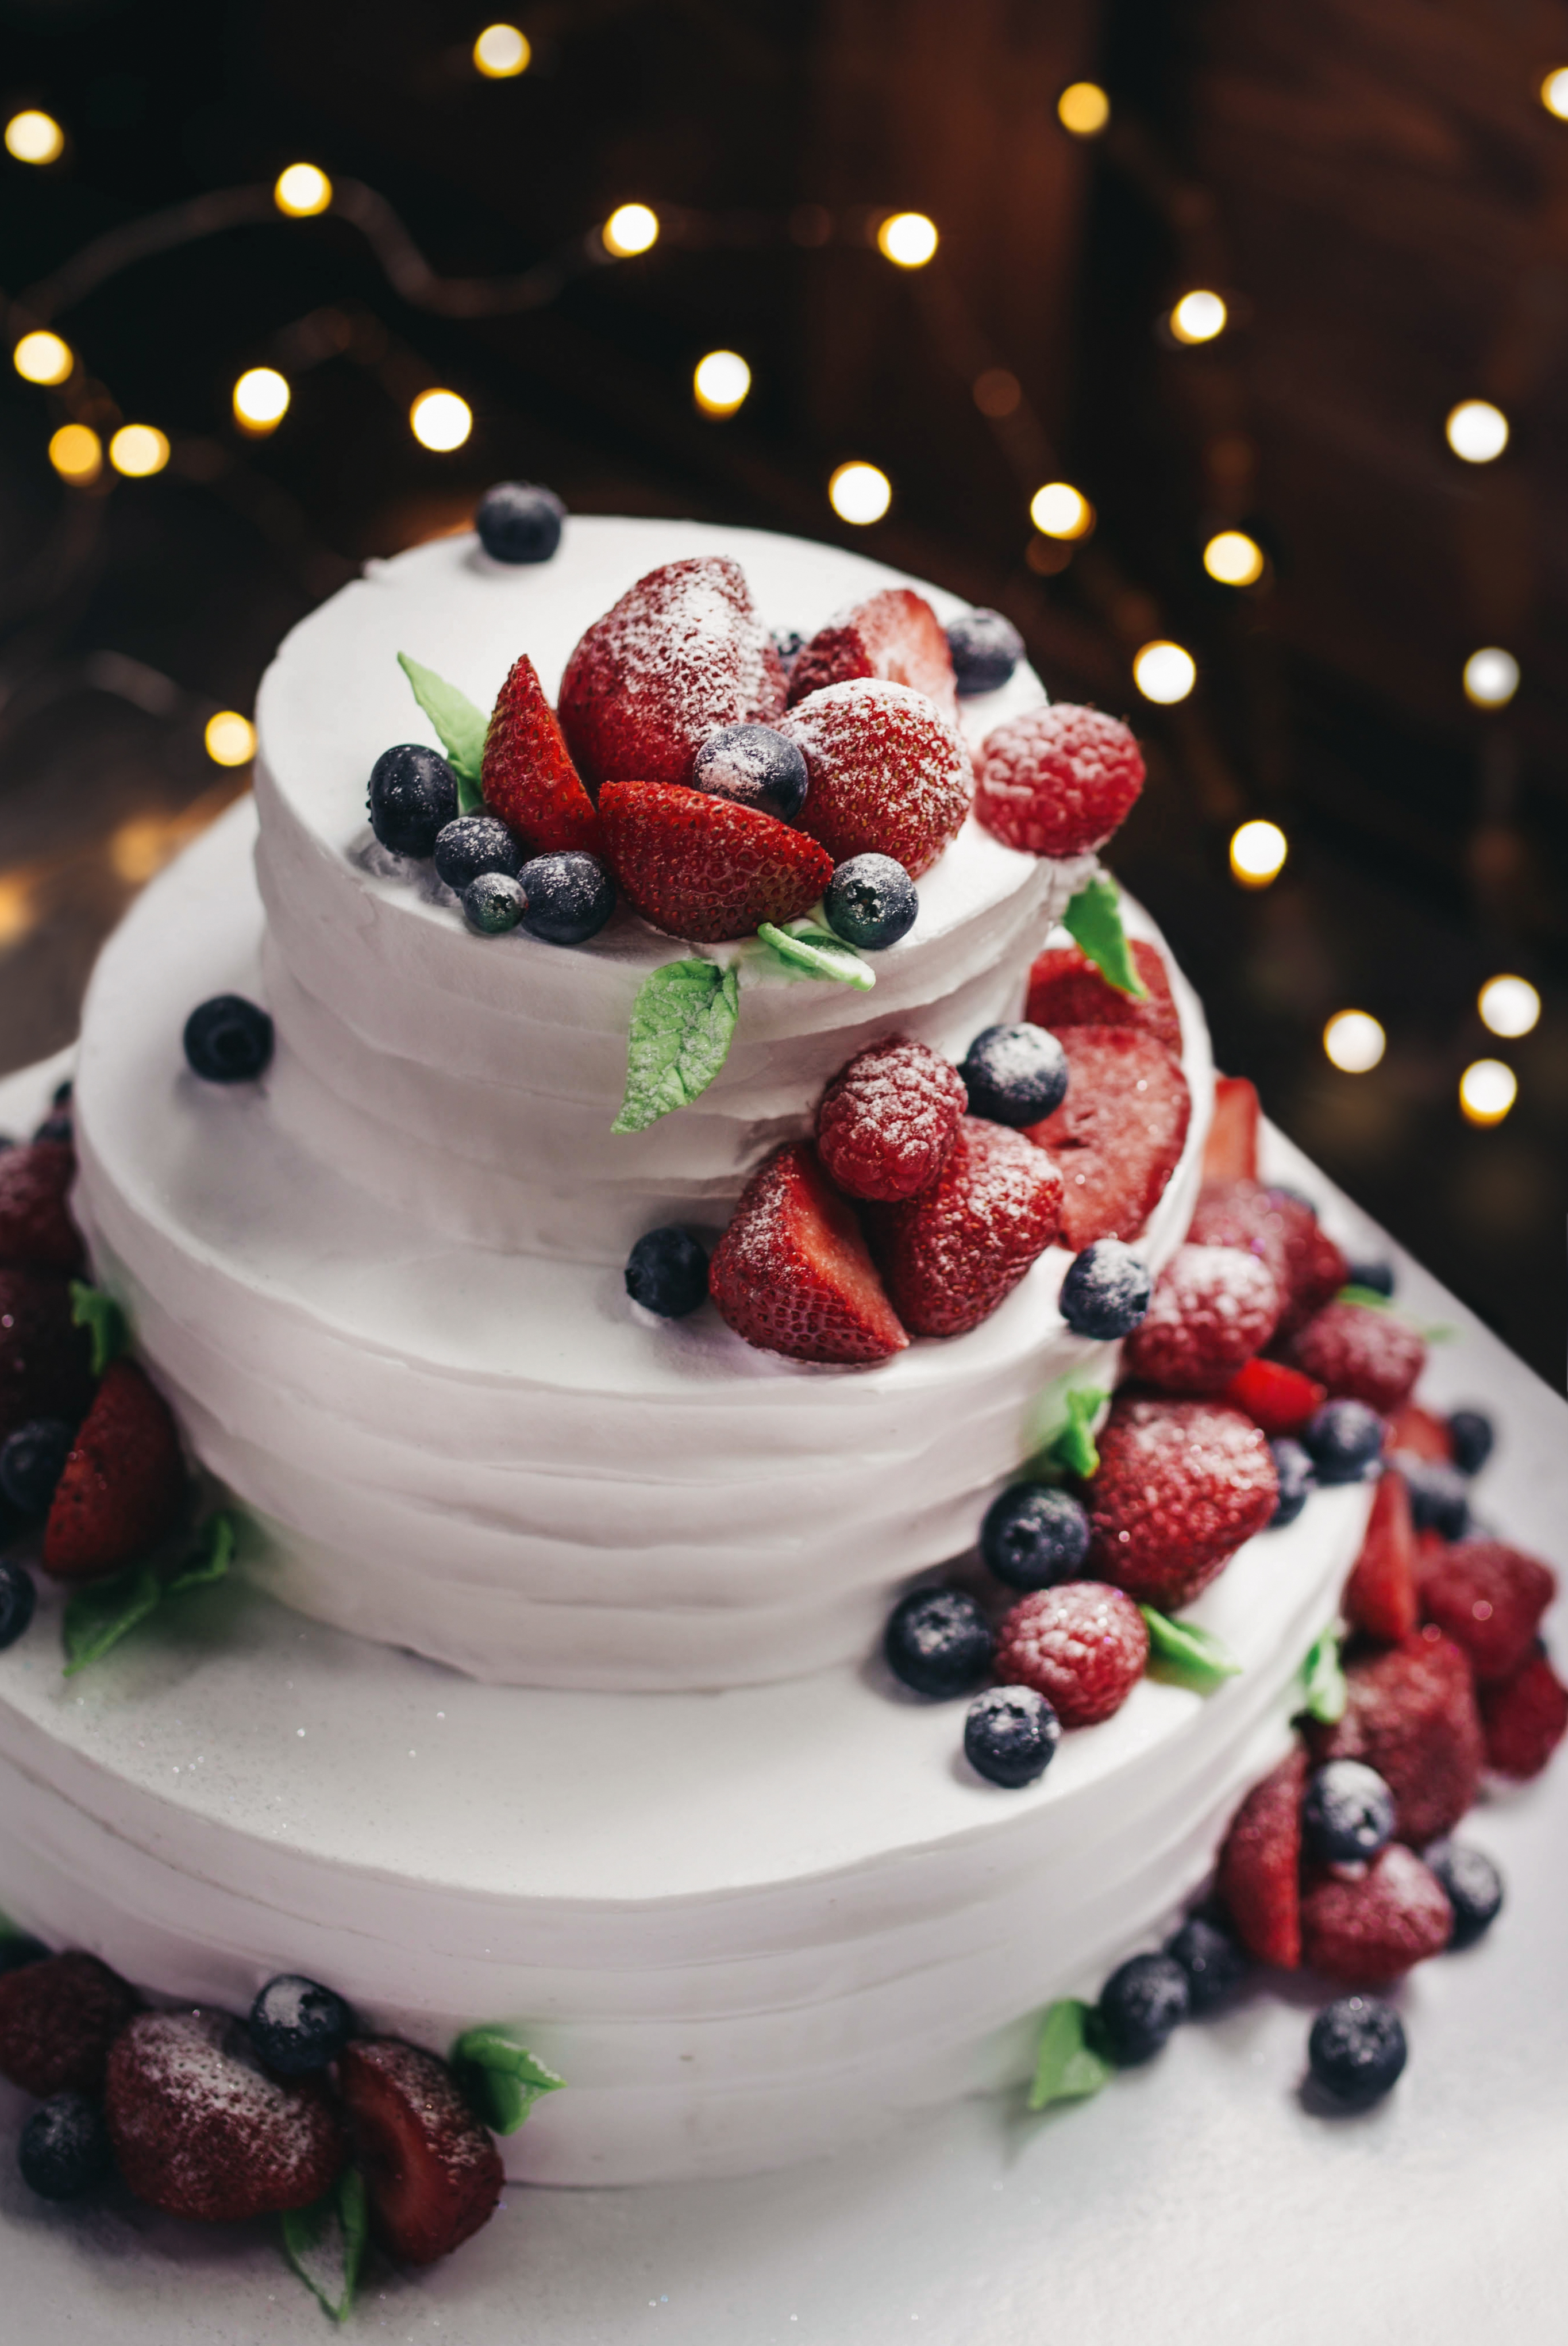 Happy Birthday Pooja Wallpaper Hd 500 Cake Pictures Download Free Images On Unsplash